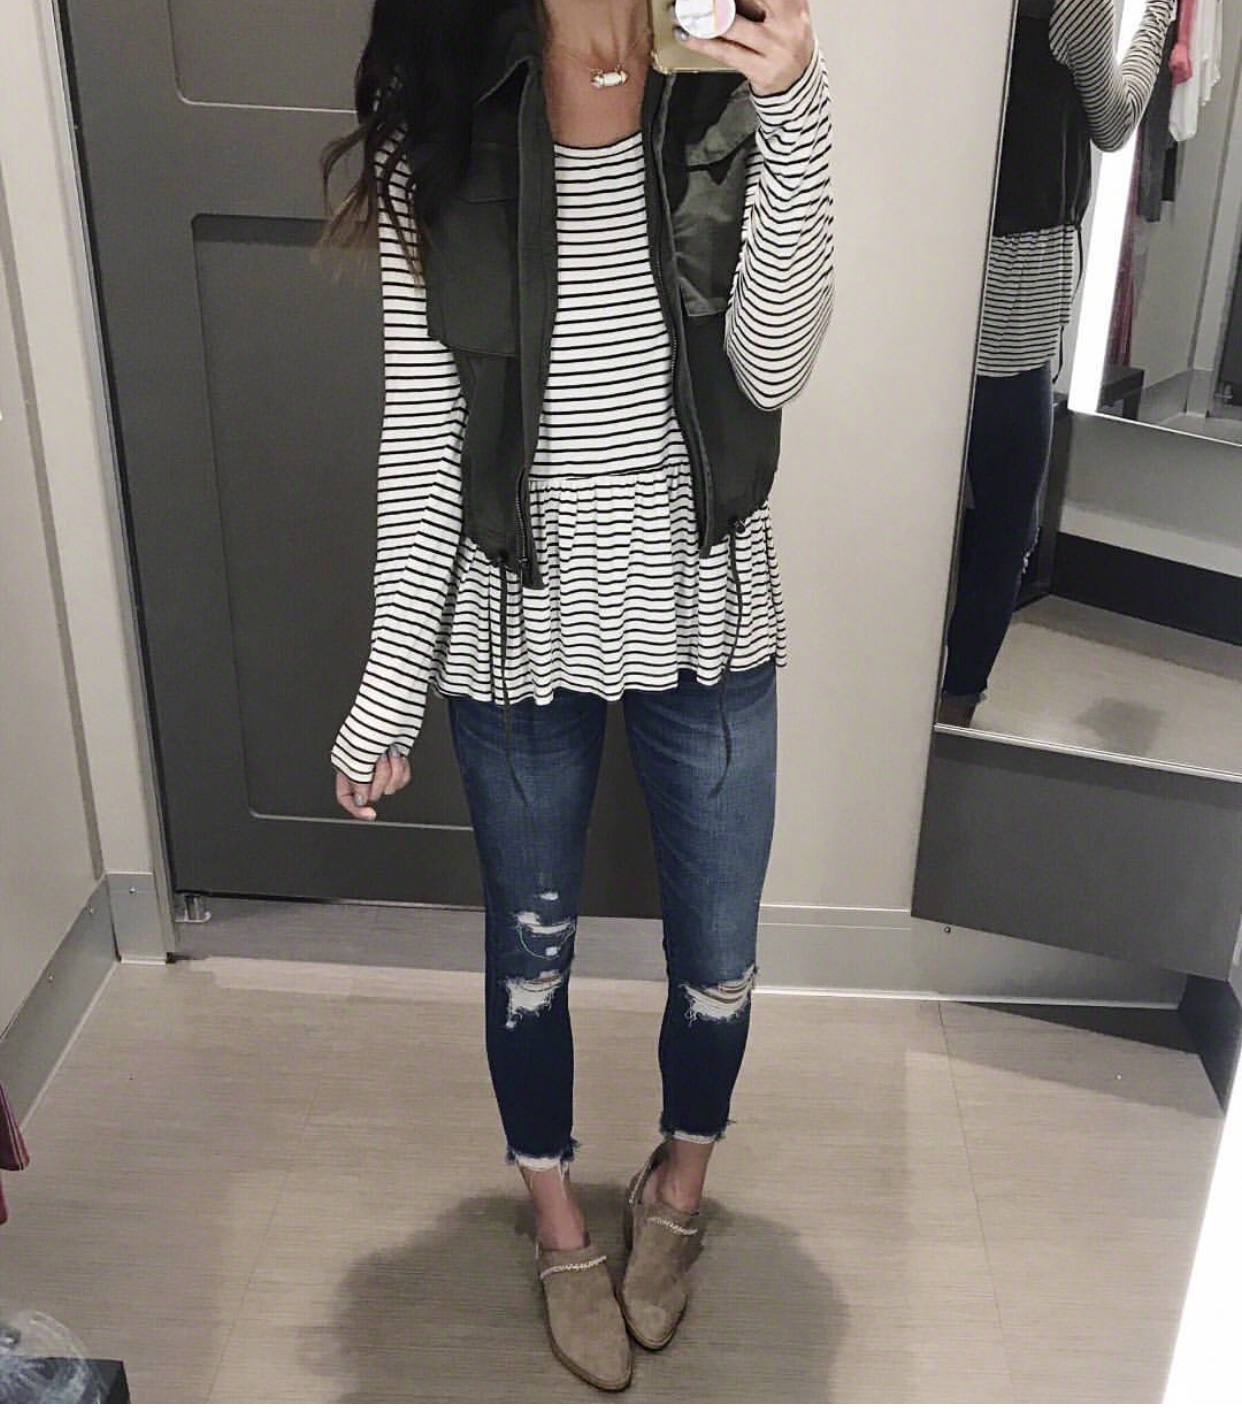 Tee, Vest, Jeans, Casual Outfit